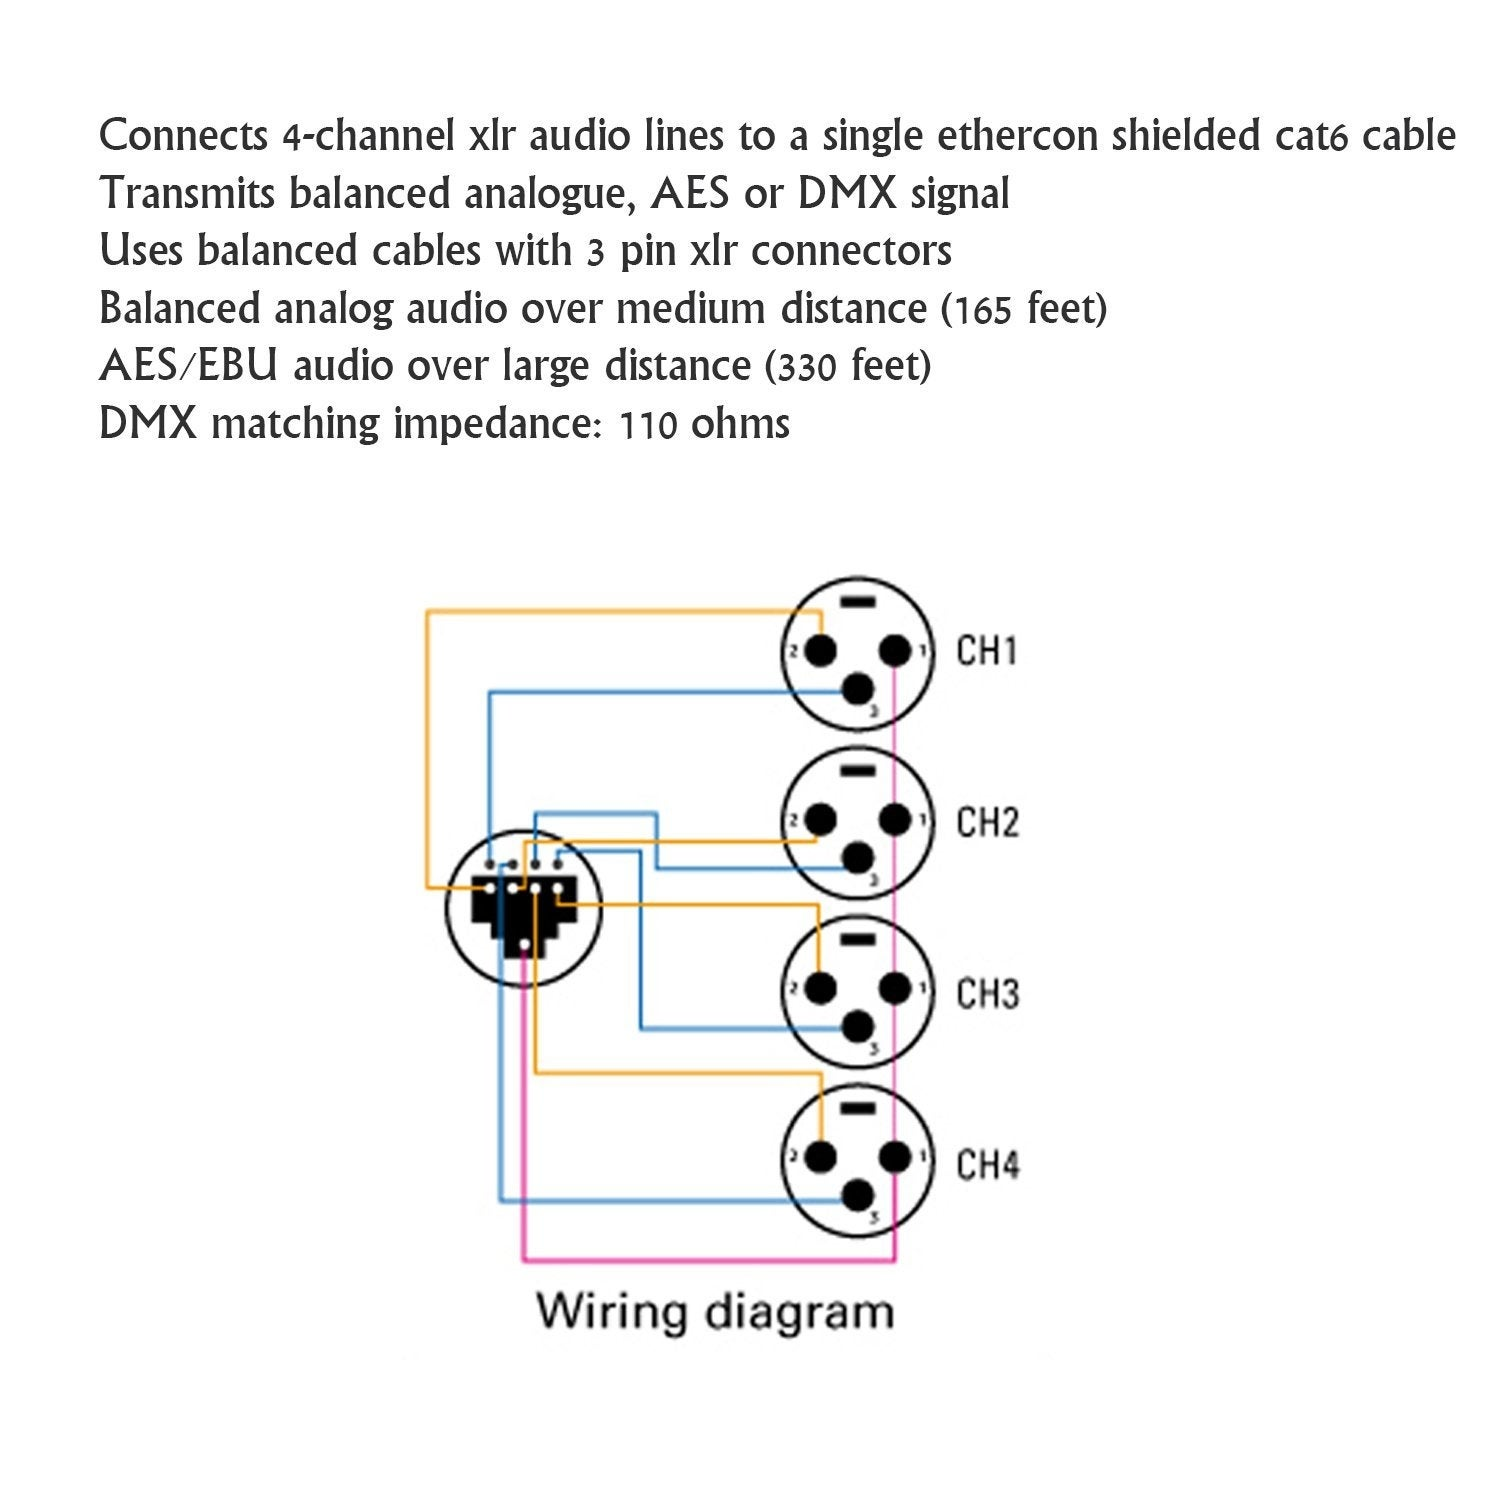 Cable Wiring Diagram On Headphone Jack Wiring Diagram On Cat 5 Cable